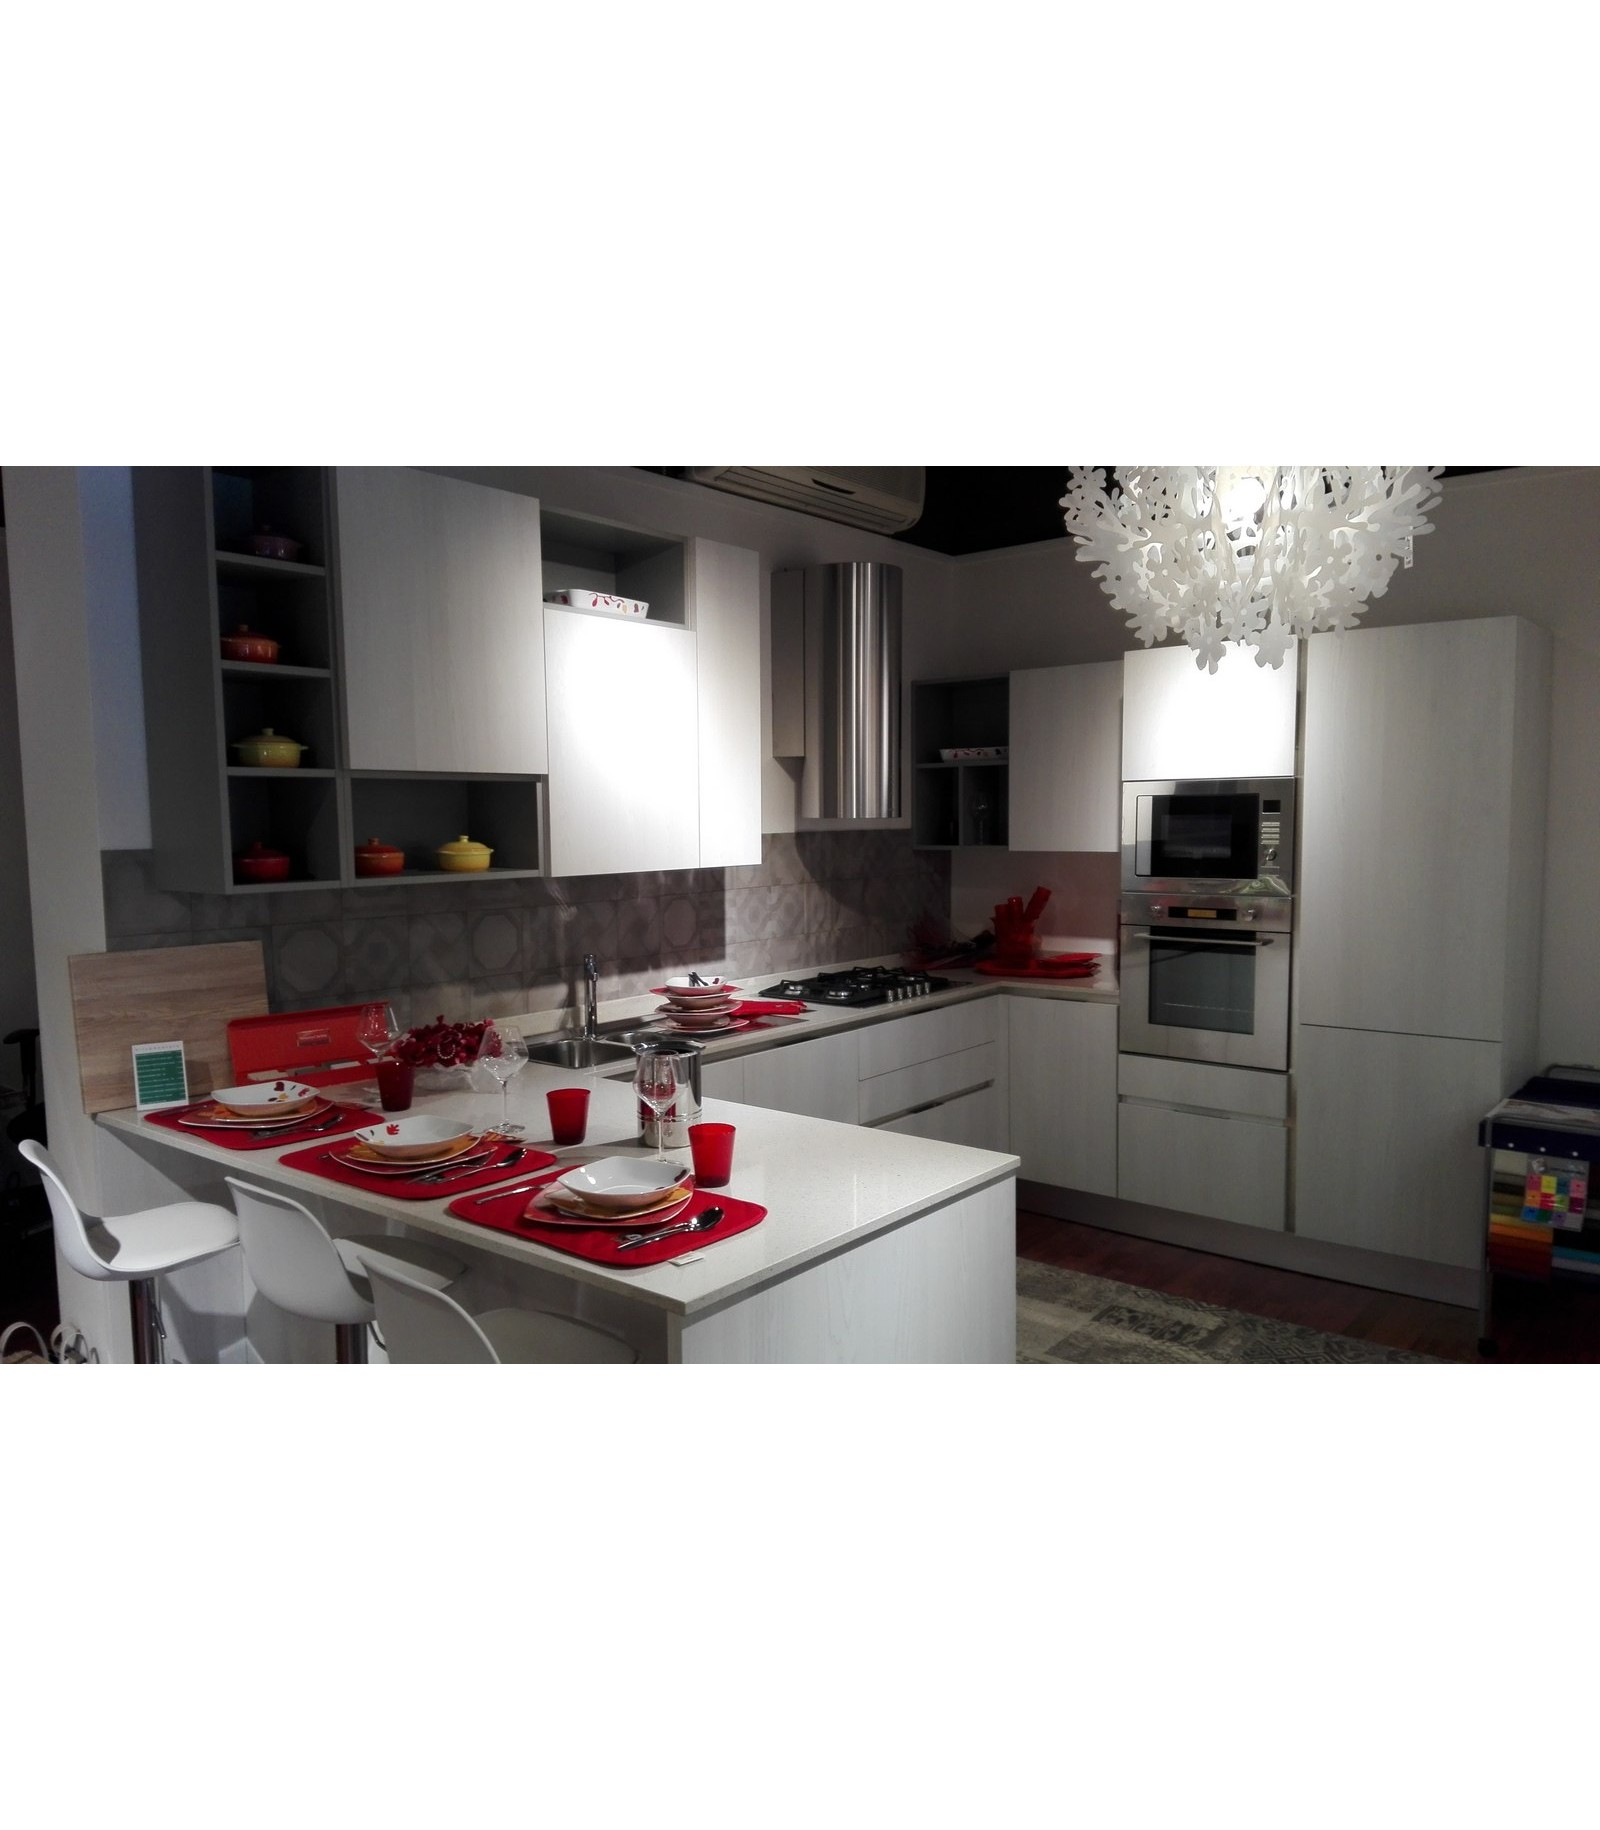 Cucine Shop On Line Of Cucina Sistematica Olmo By Veneta Cucine Outlet